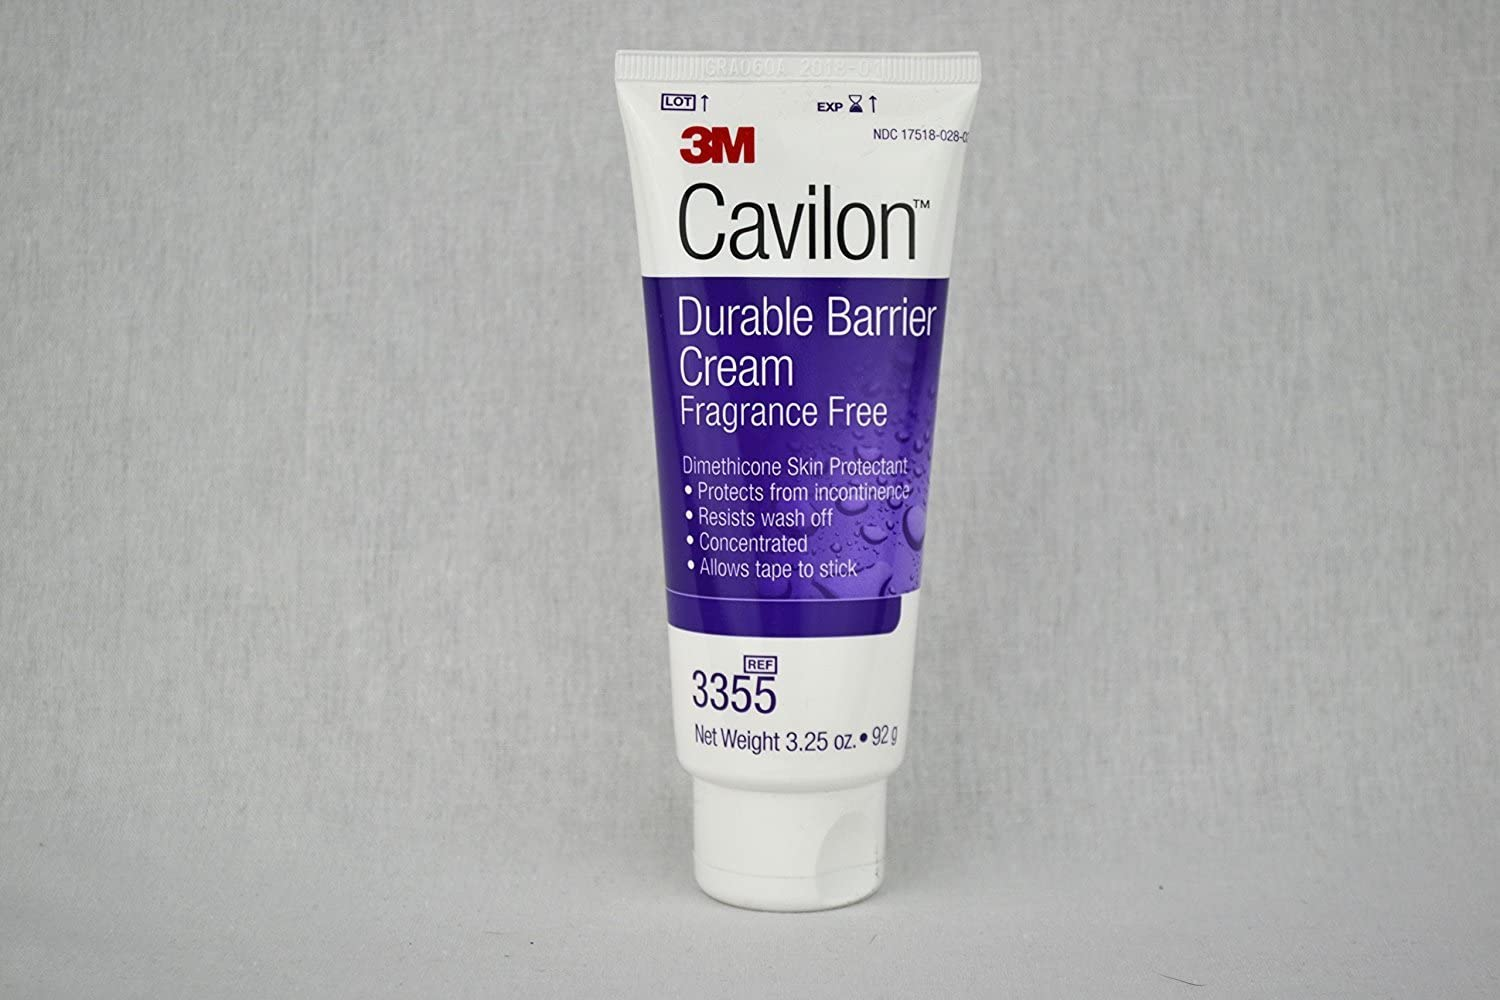 3M Cavilon Durable Barrier Cream - Fragrance Free - 3.25 ounces (92g) Tube - Pack of 3